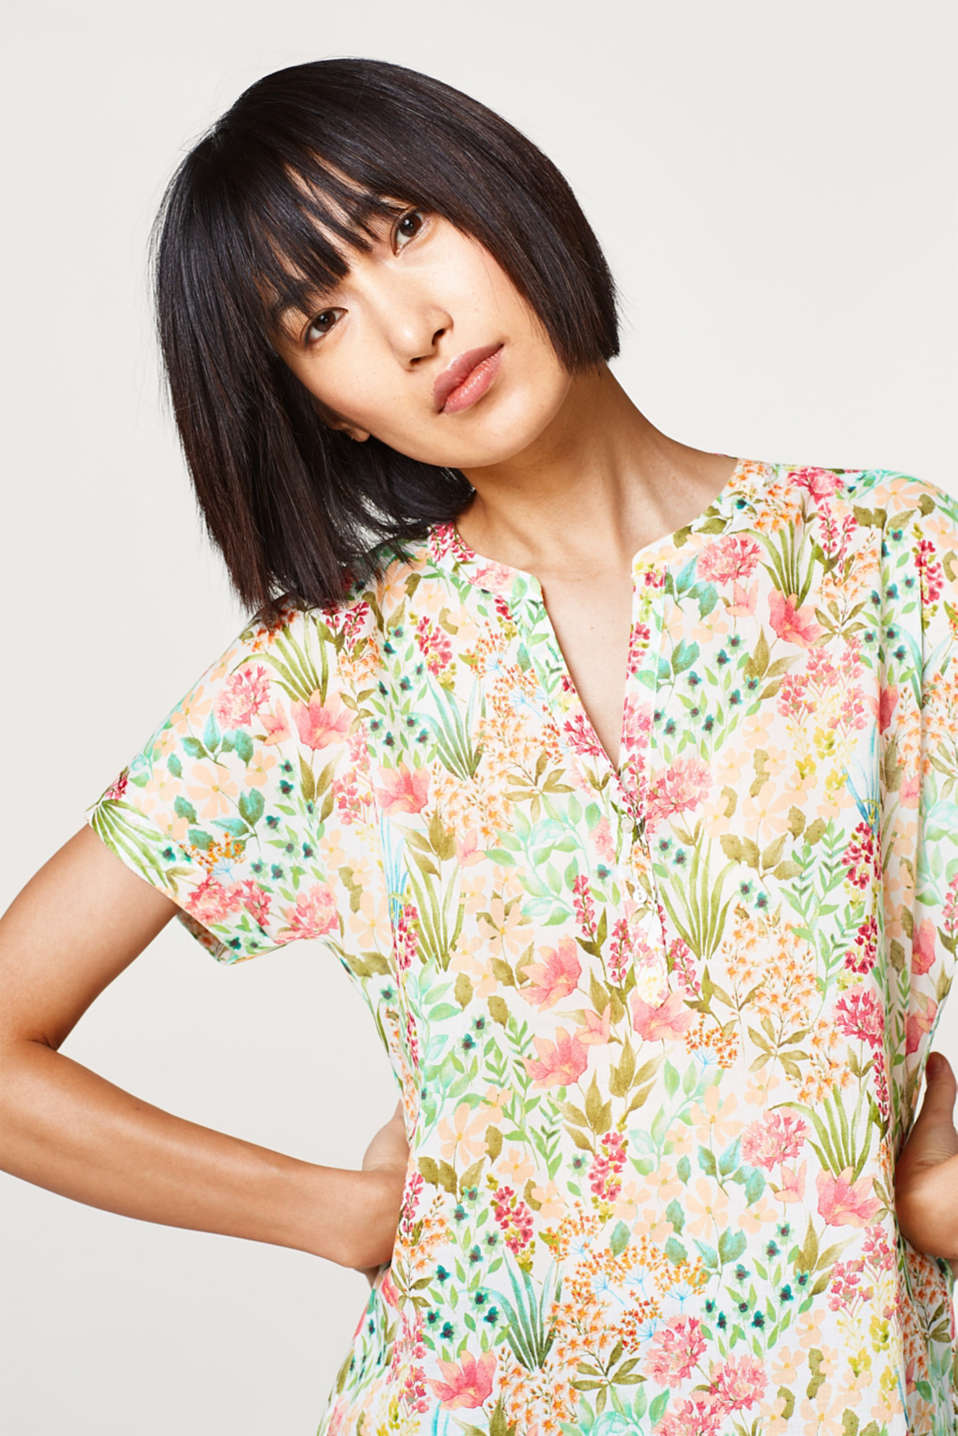 Esprit - Henley blouse with floral print, 100% cotton